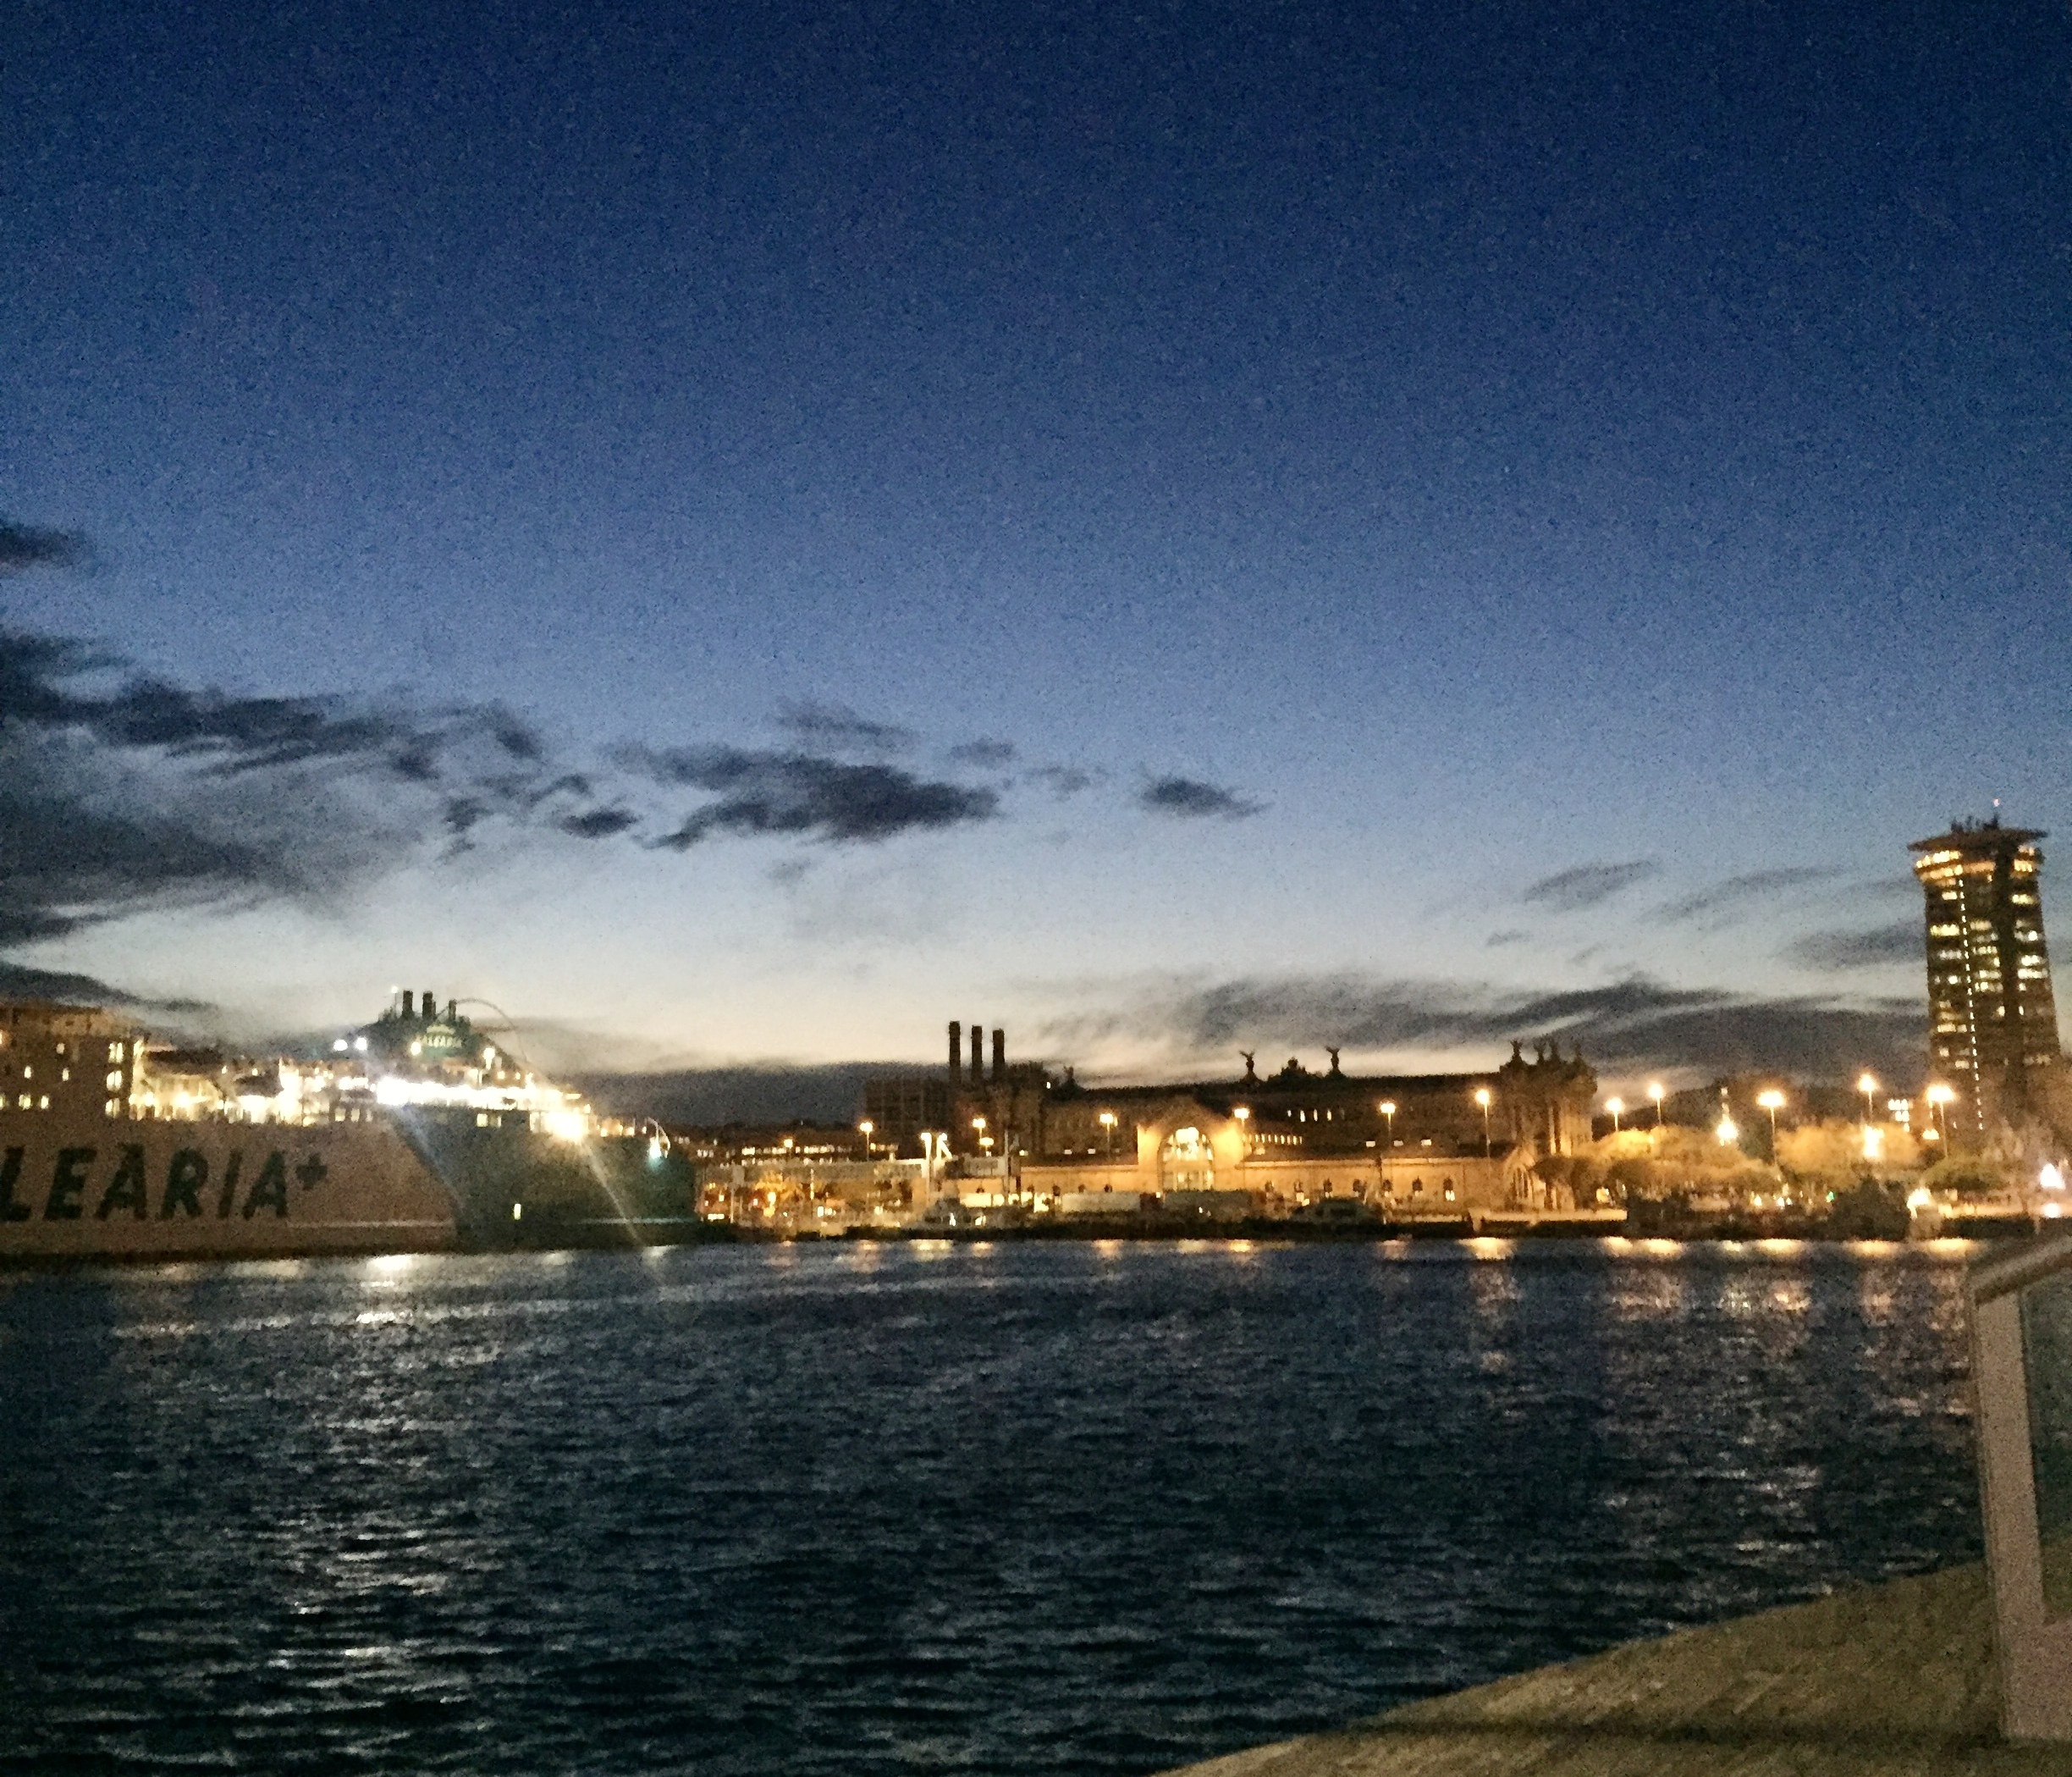 Barcelona beach at night - travel guide